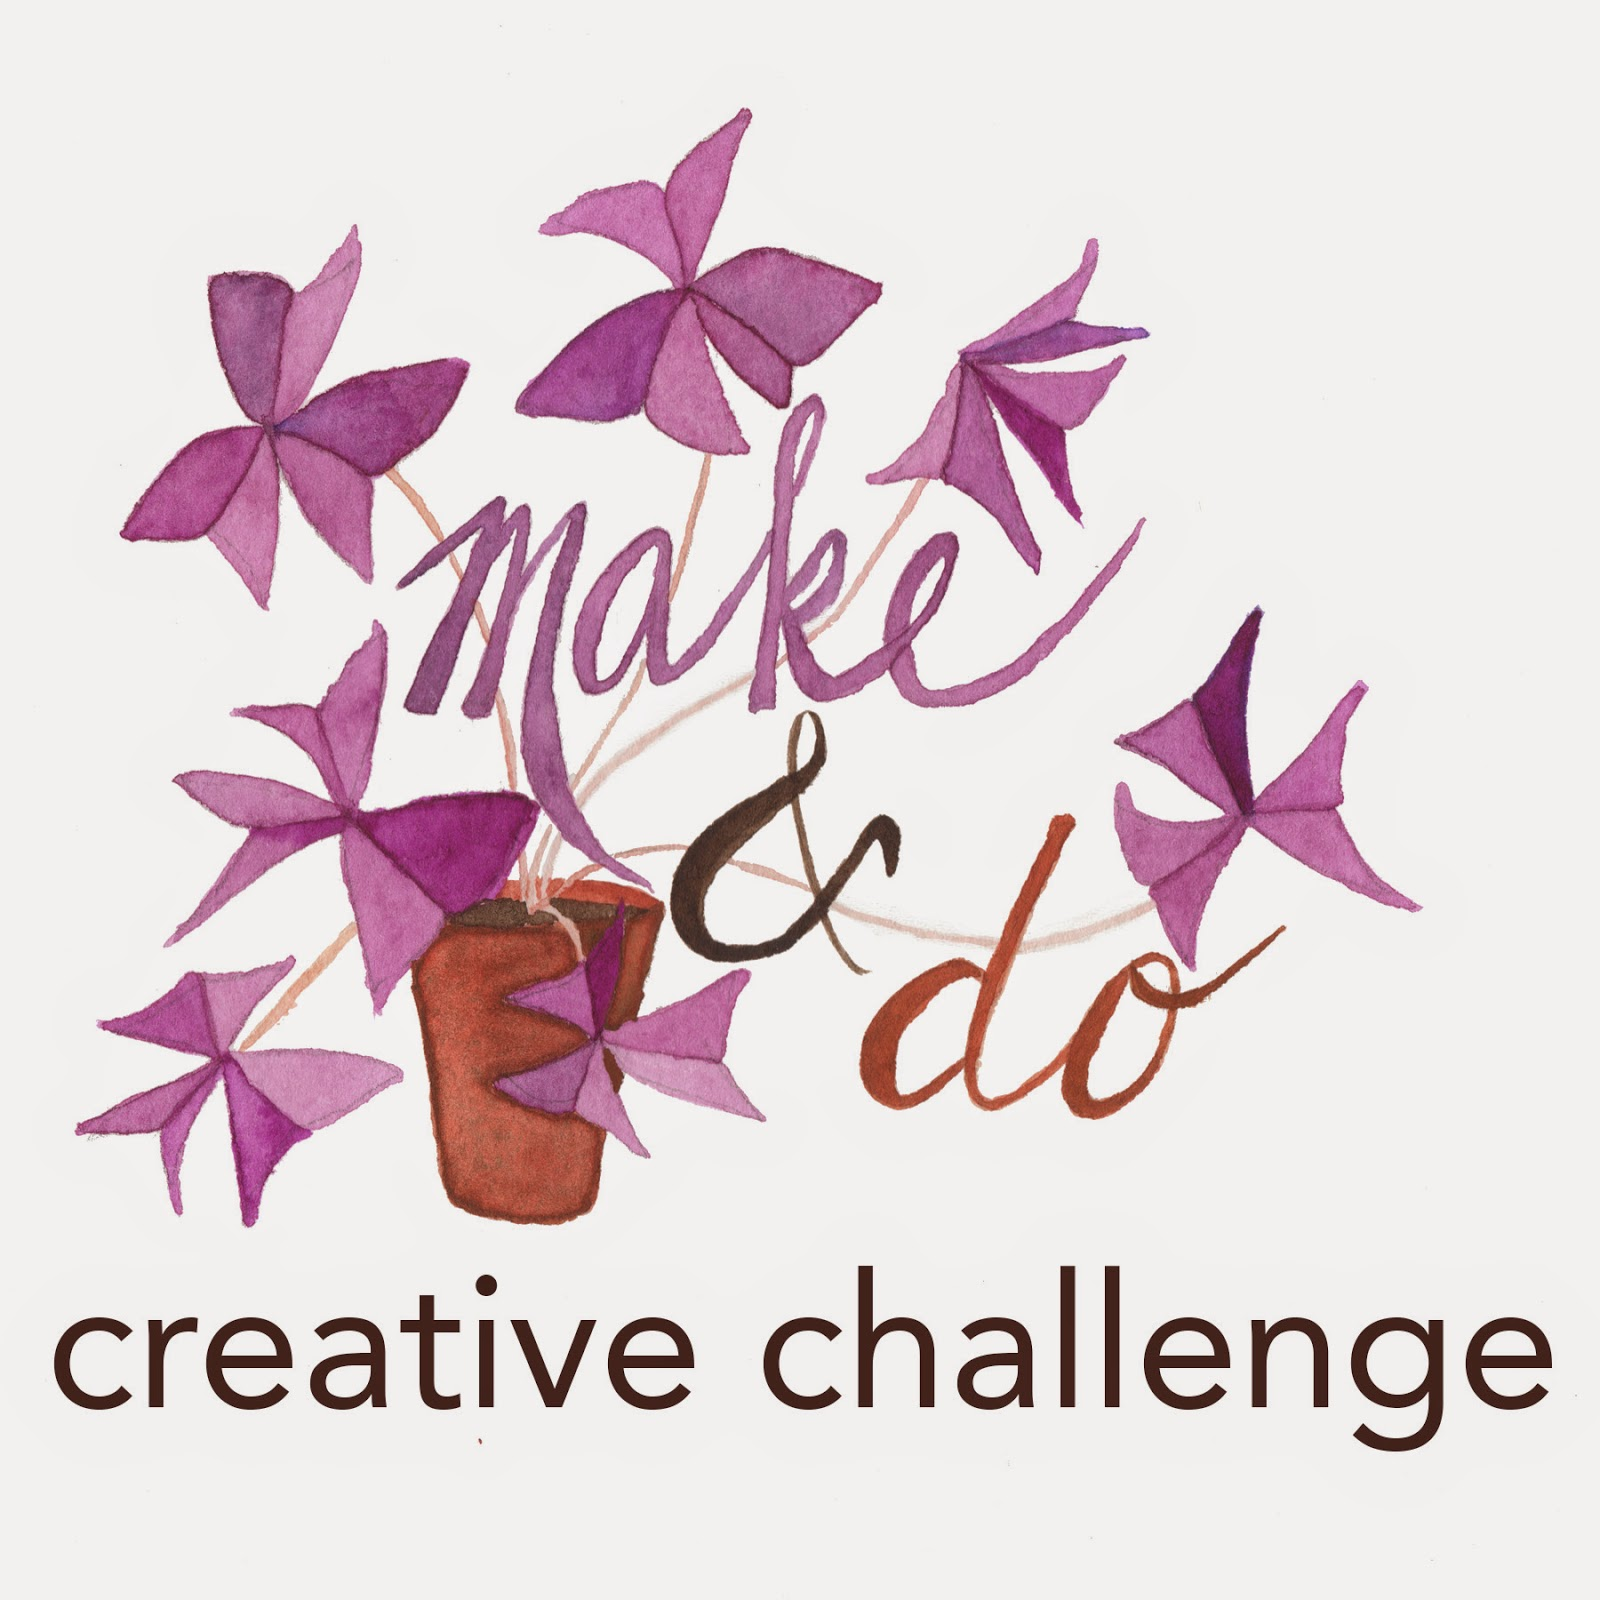 make and do creative challenge watercolor logo